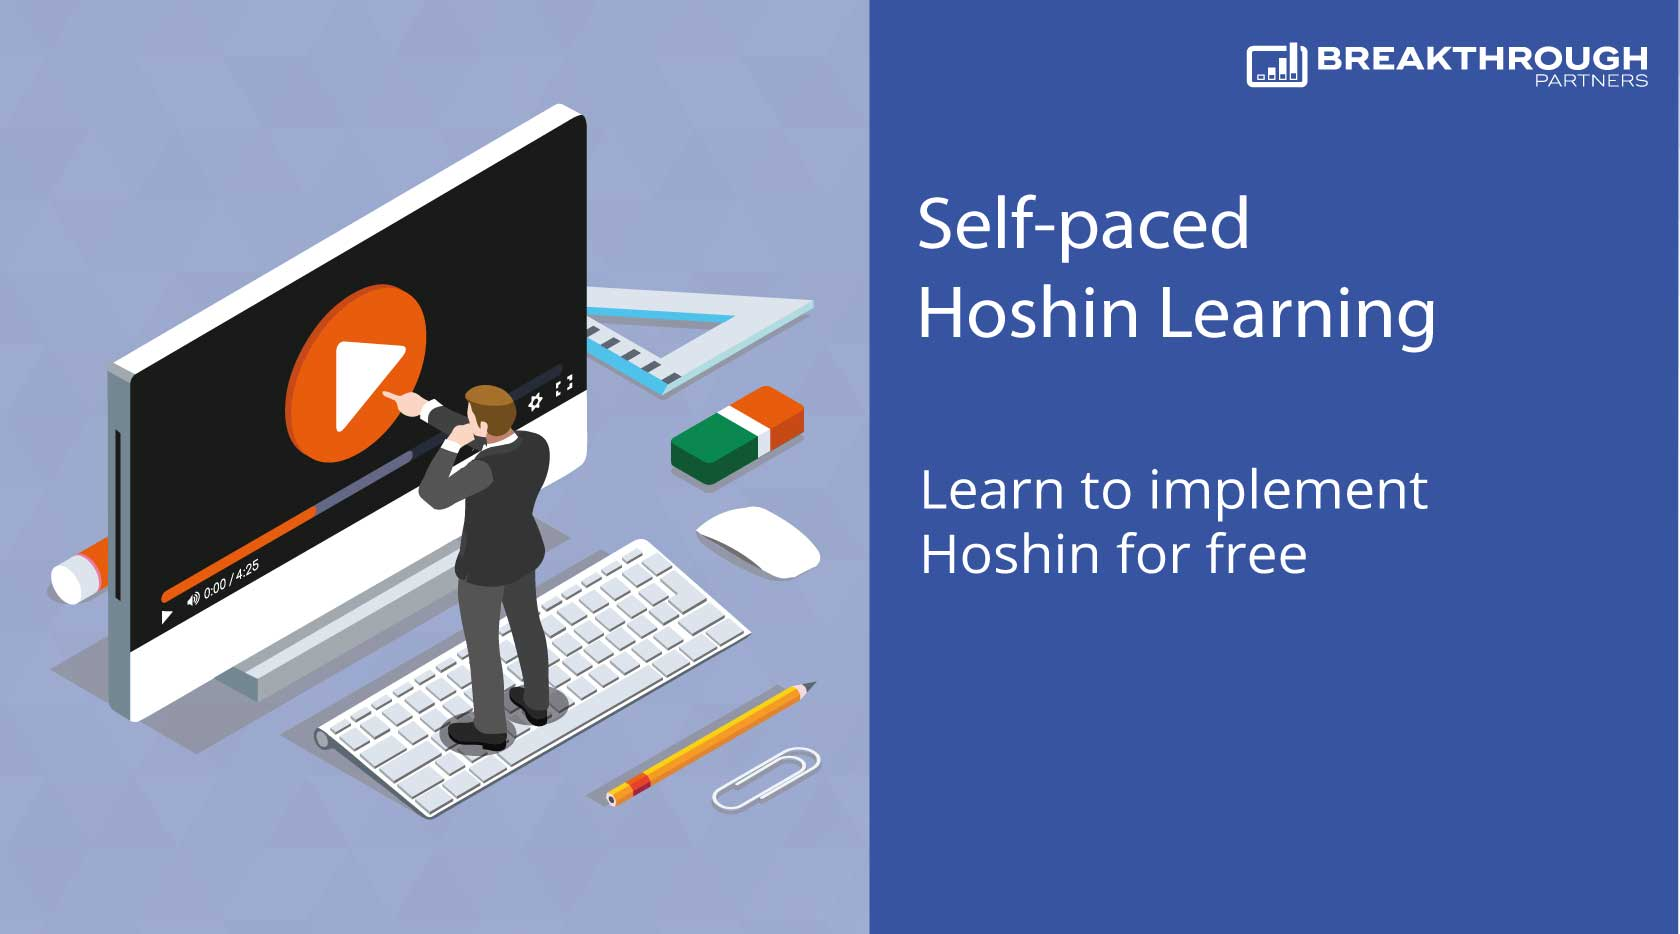 Self-paced Hoshin learning